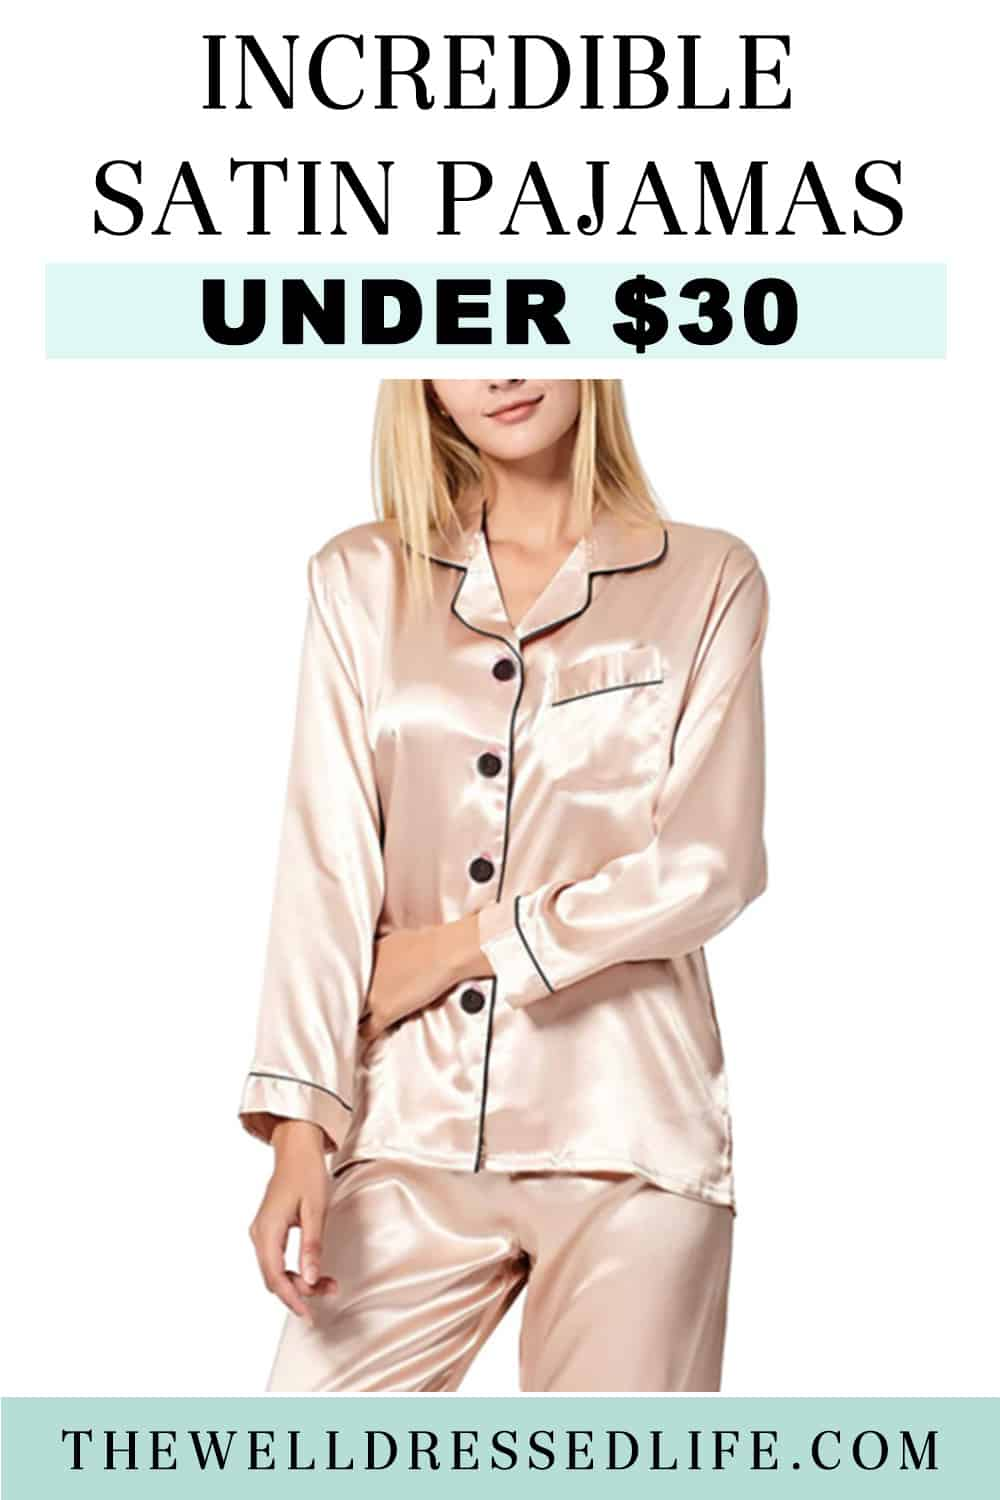 Amazon\'s Top Rated Satin Pajamas are a Dream